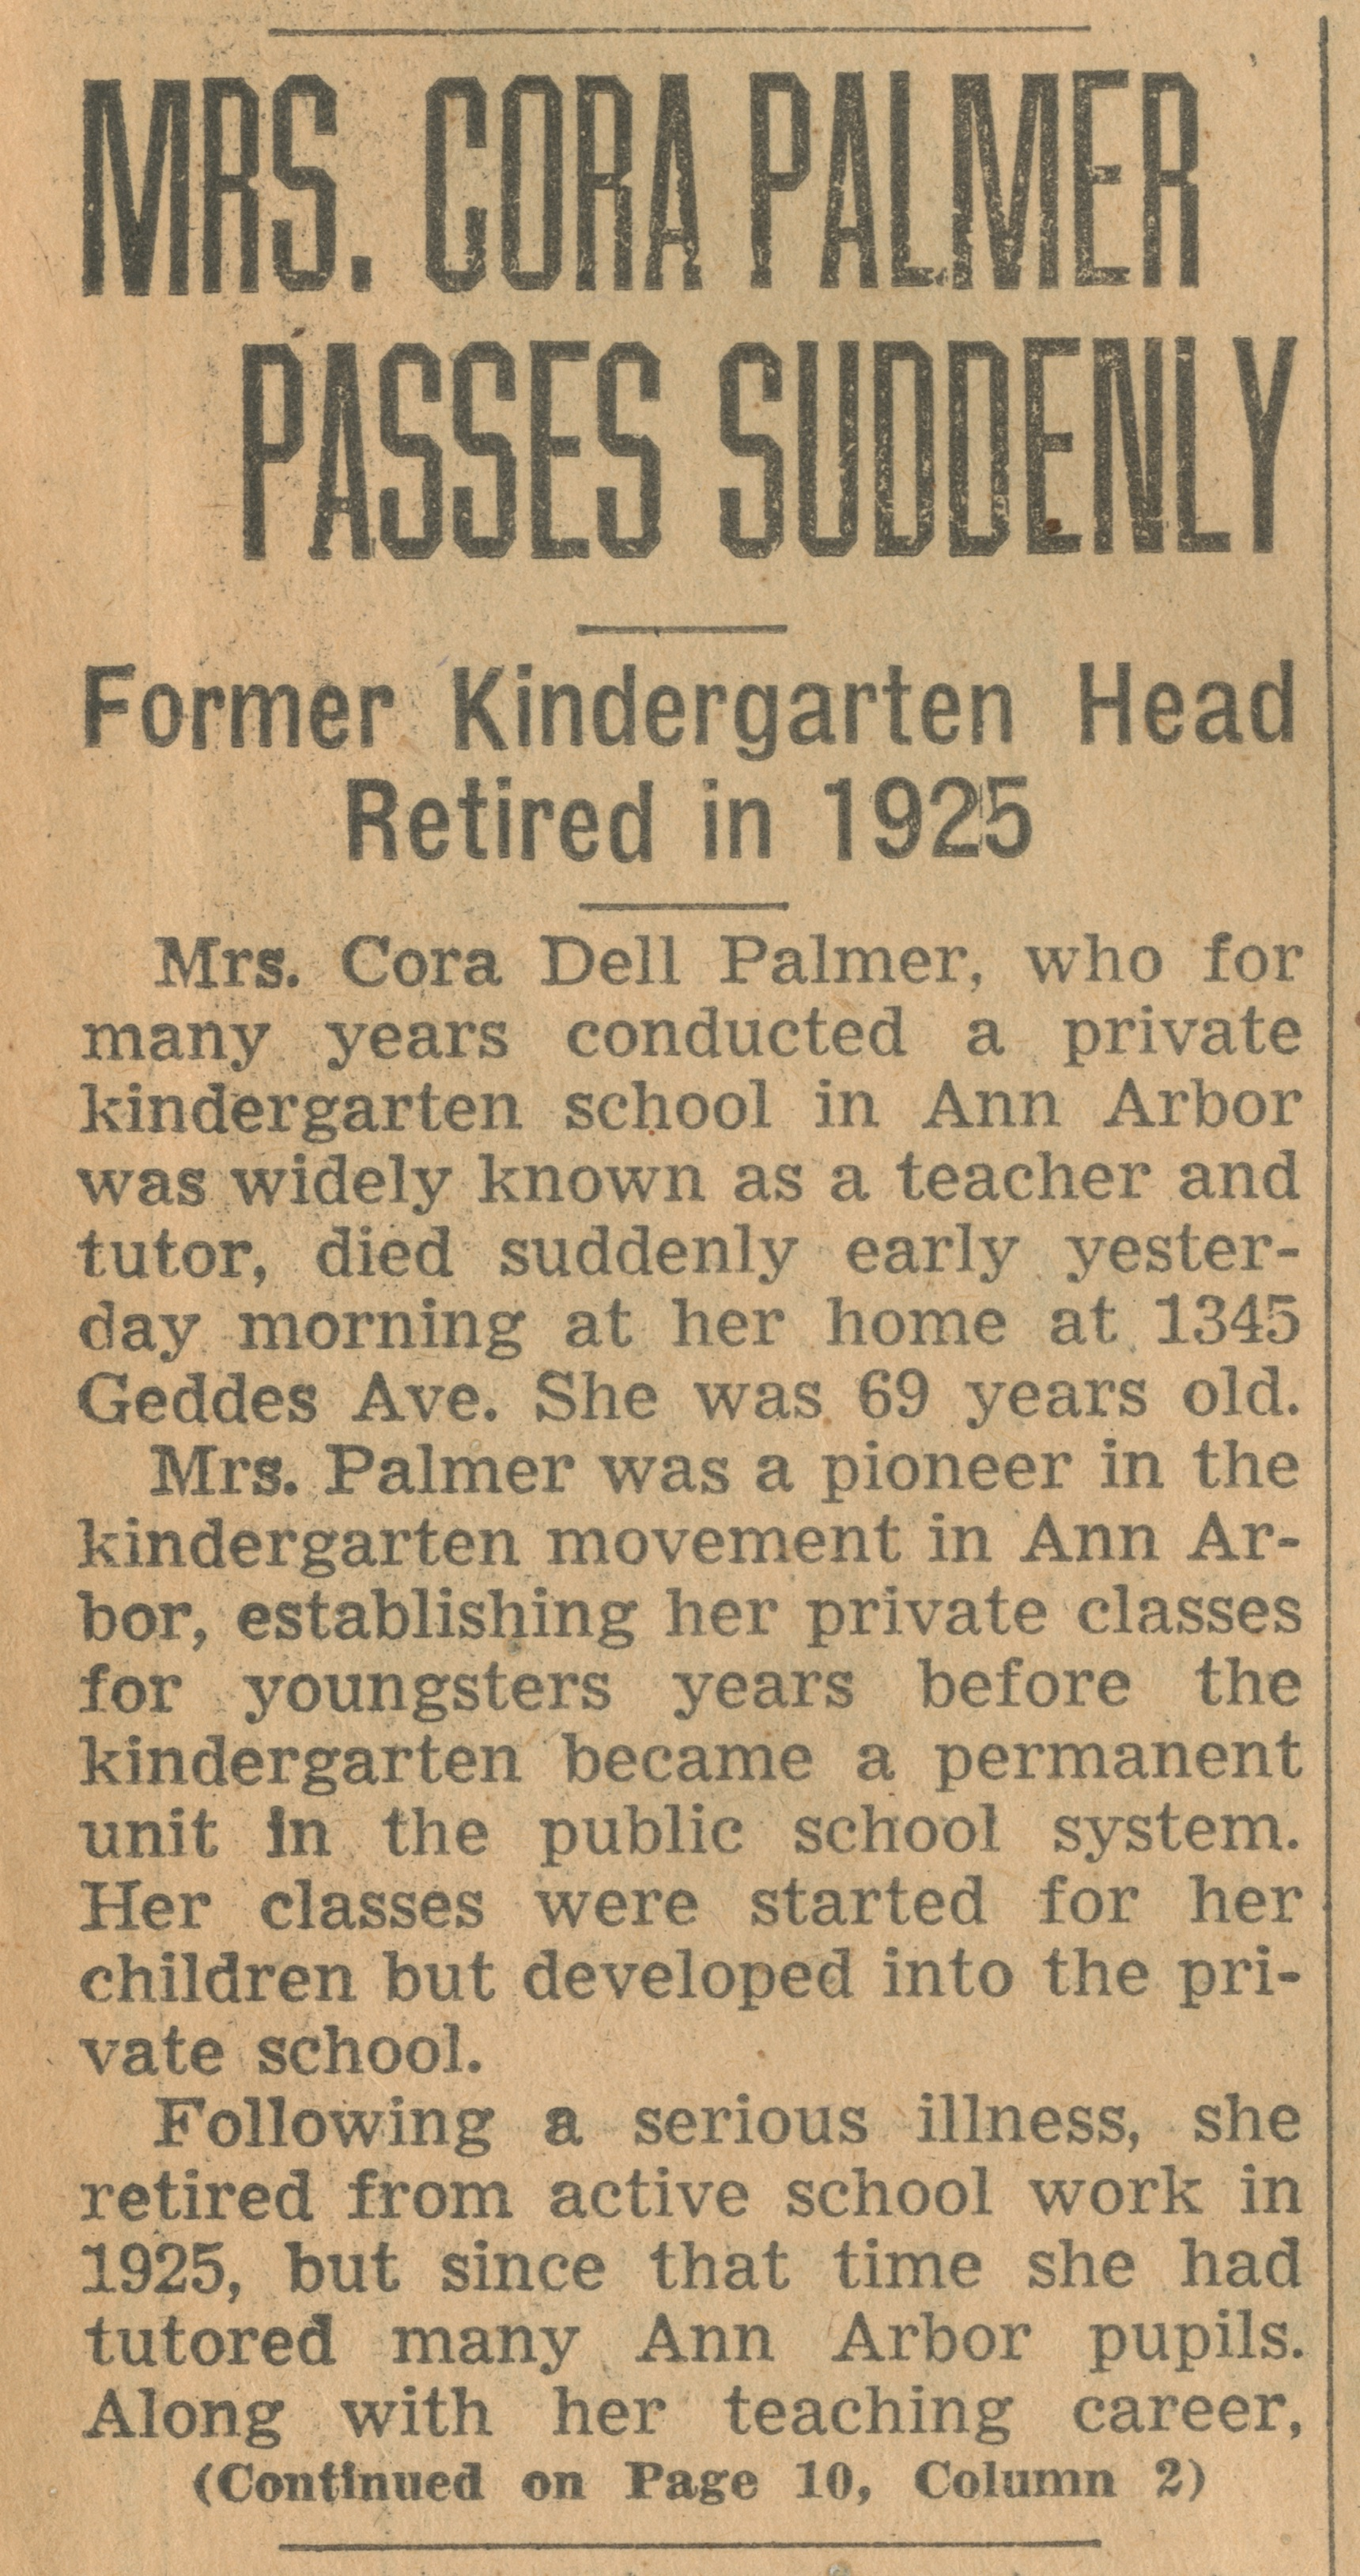 Mrs. Cora Palmer Passes Suddenly image